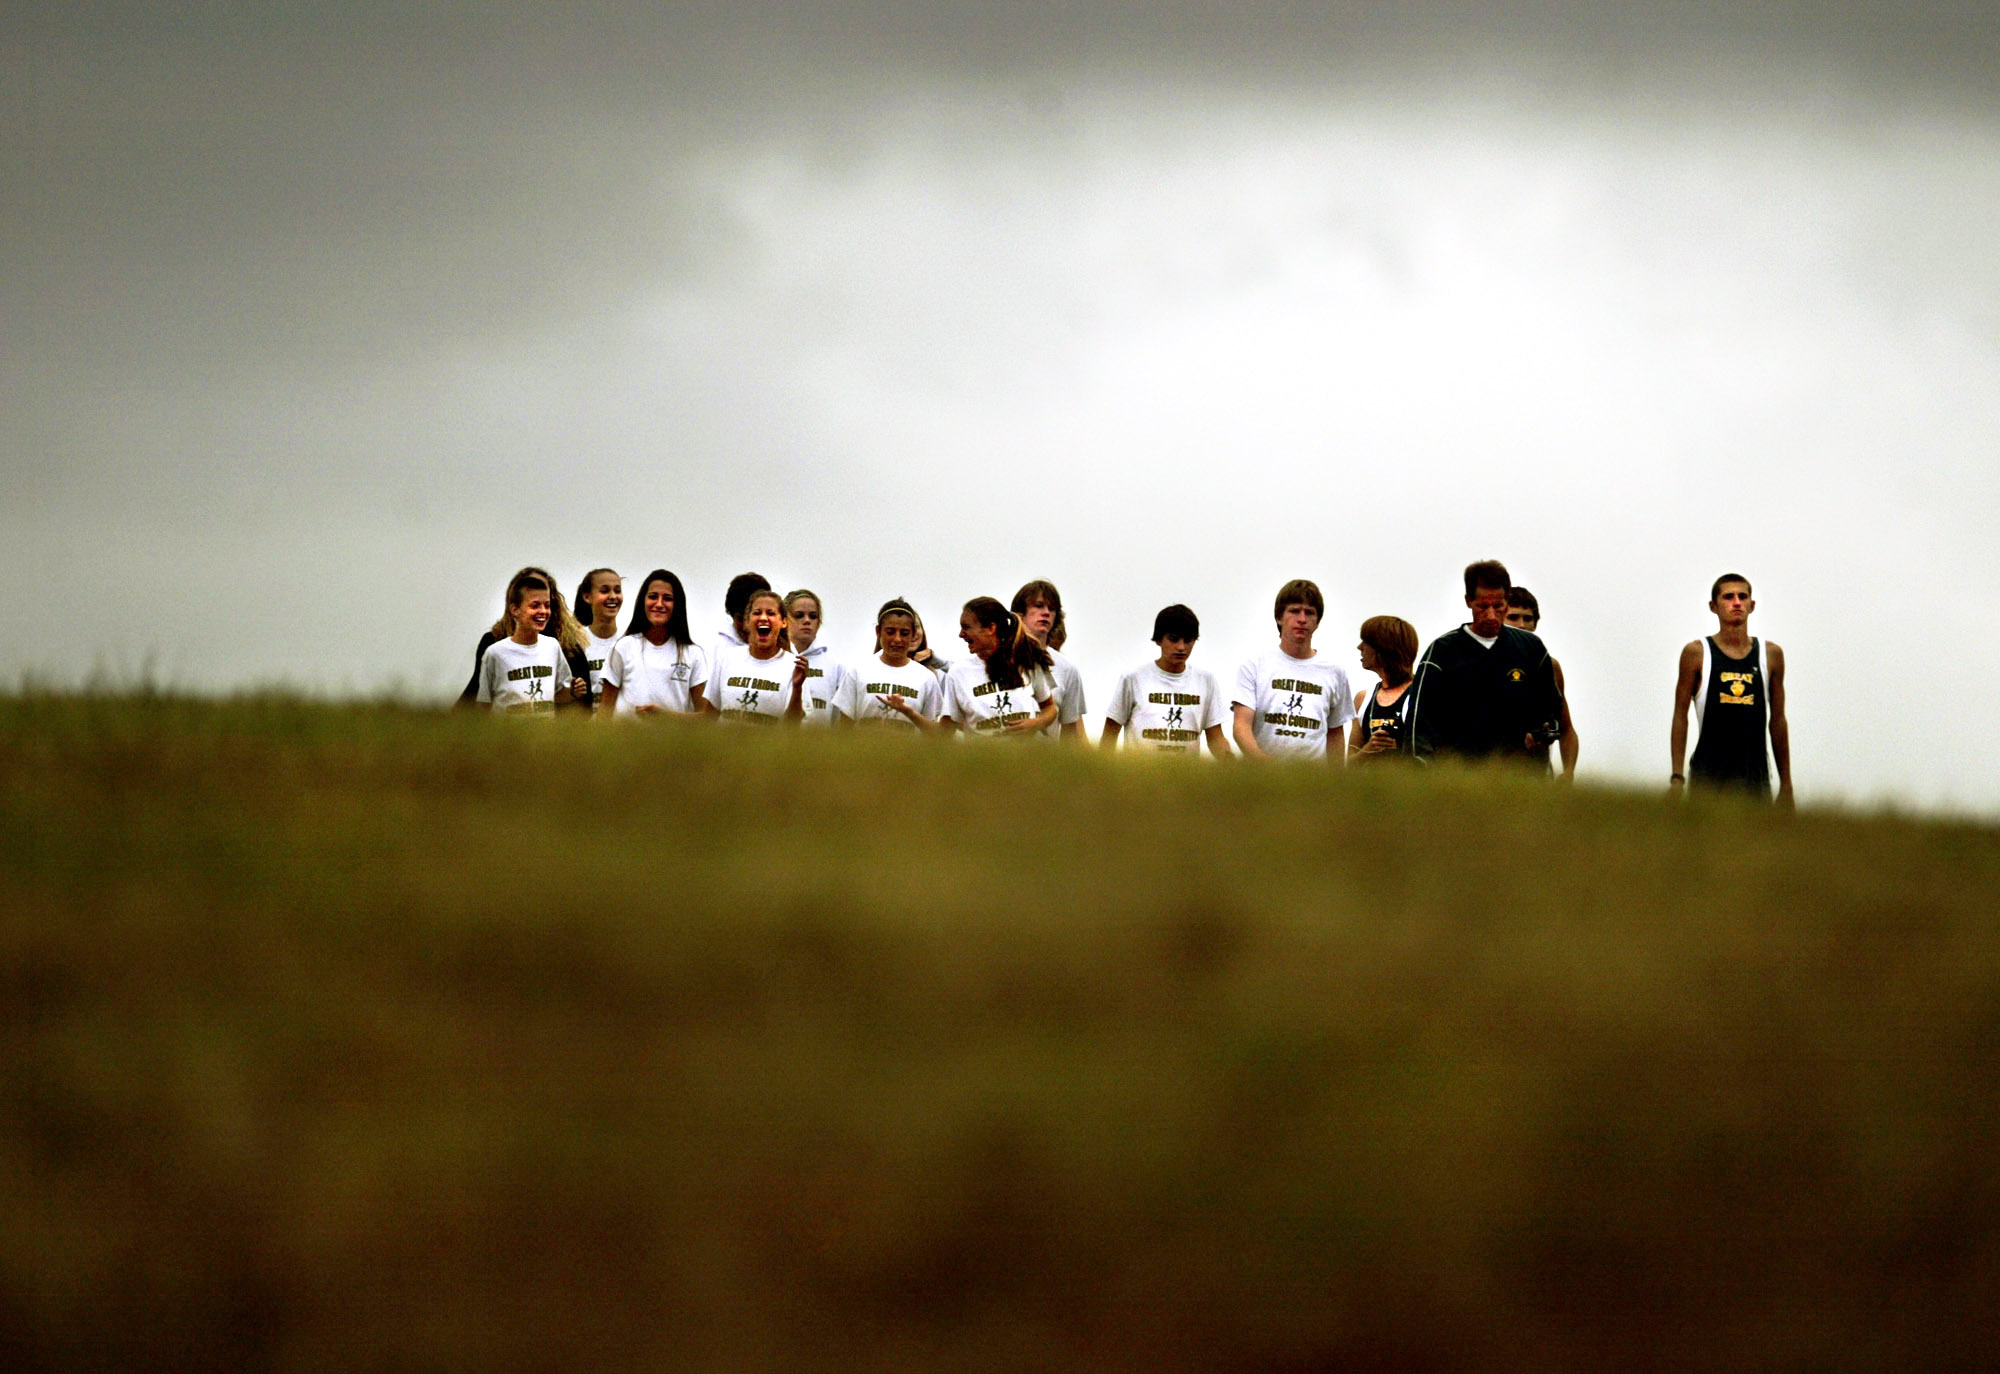 The Great Bridge Cross Country team emerges from the top of a hill before the start of a meet.